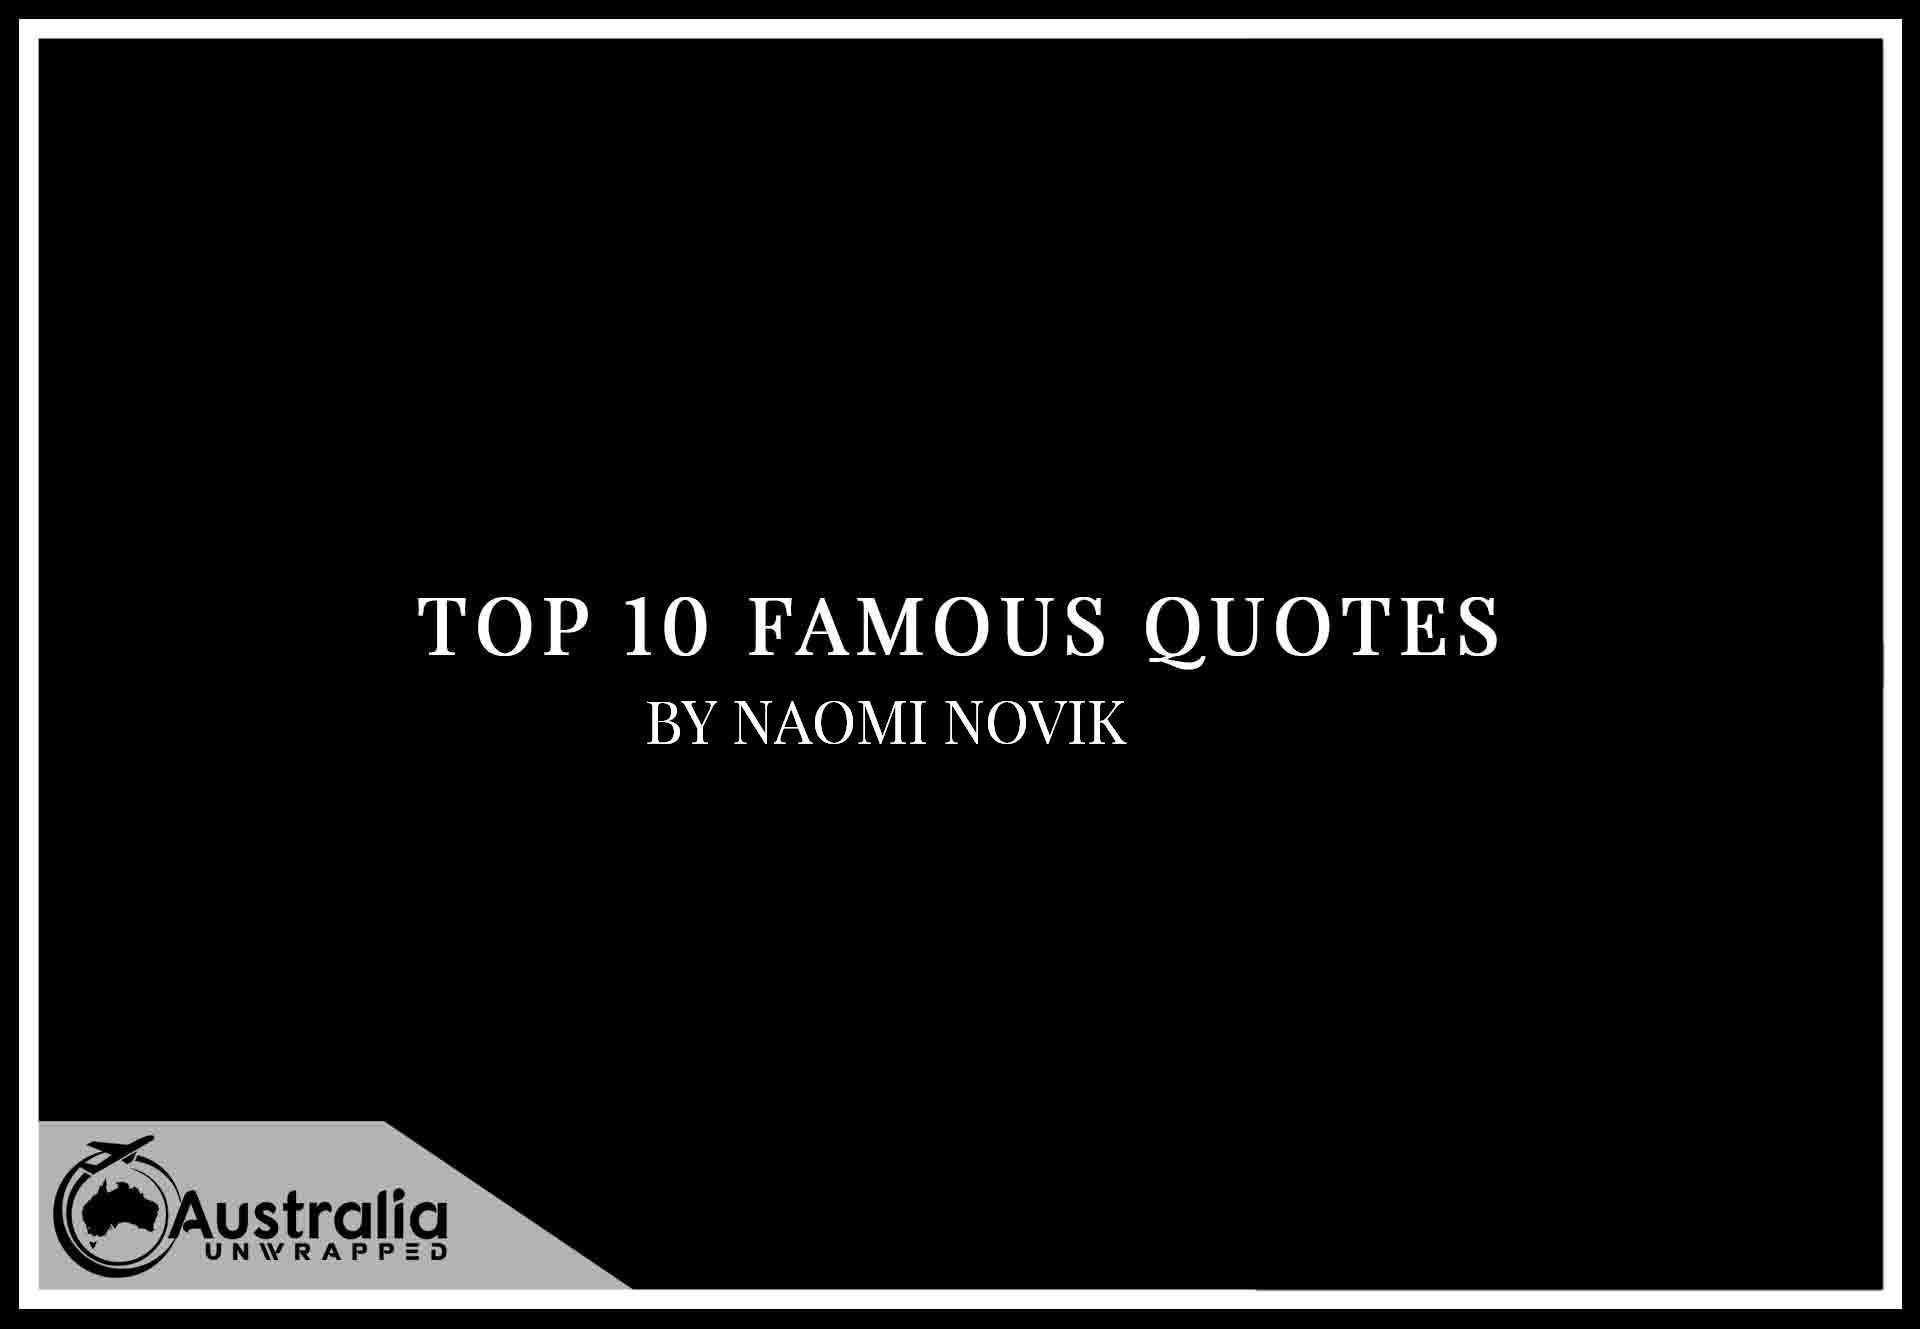 Top 10 Famous Quotes by Author Naomi Novik